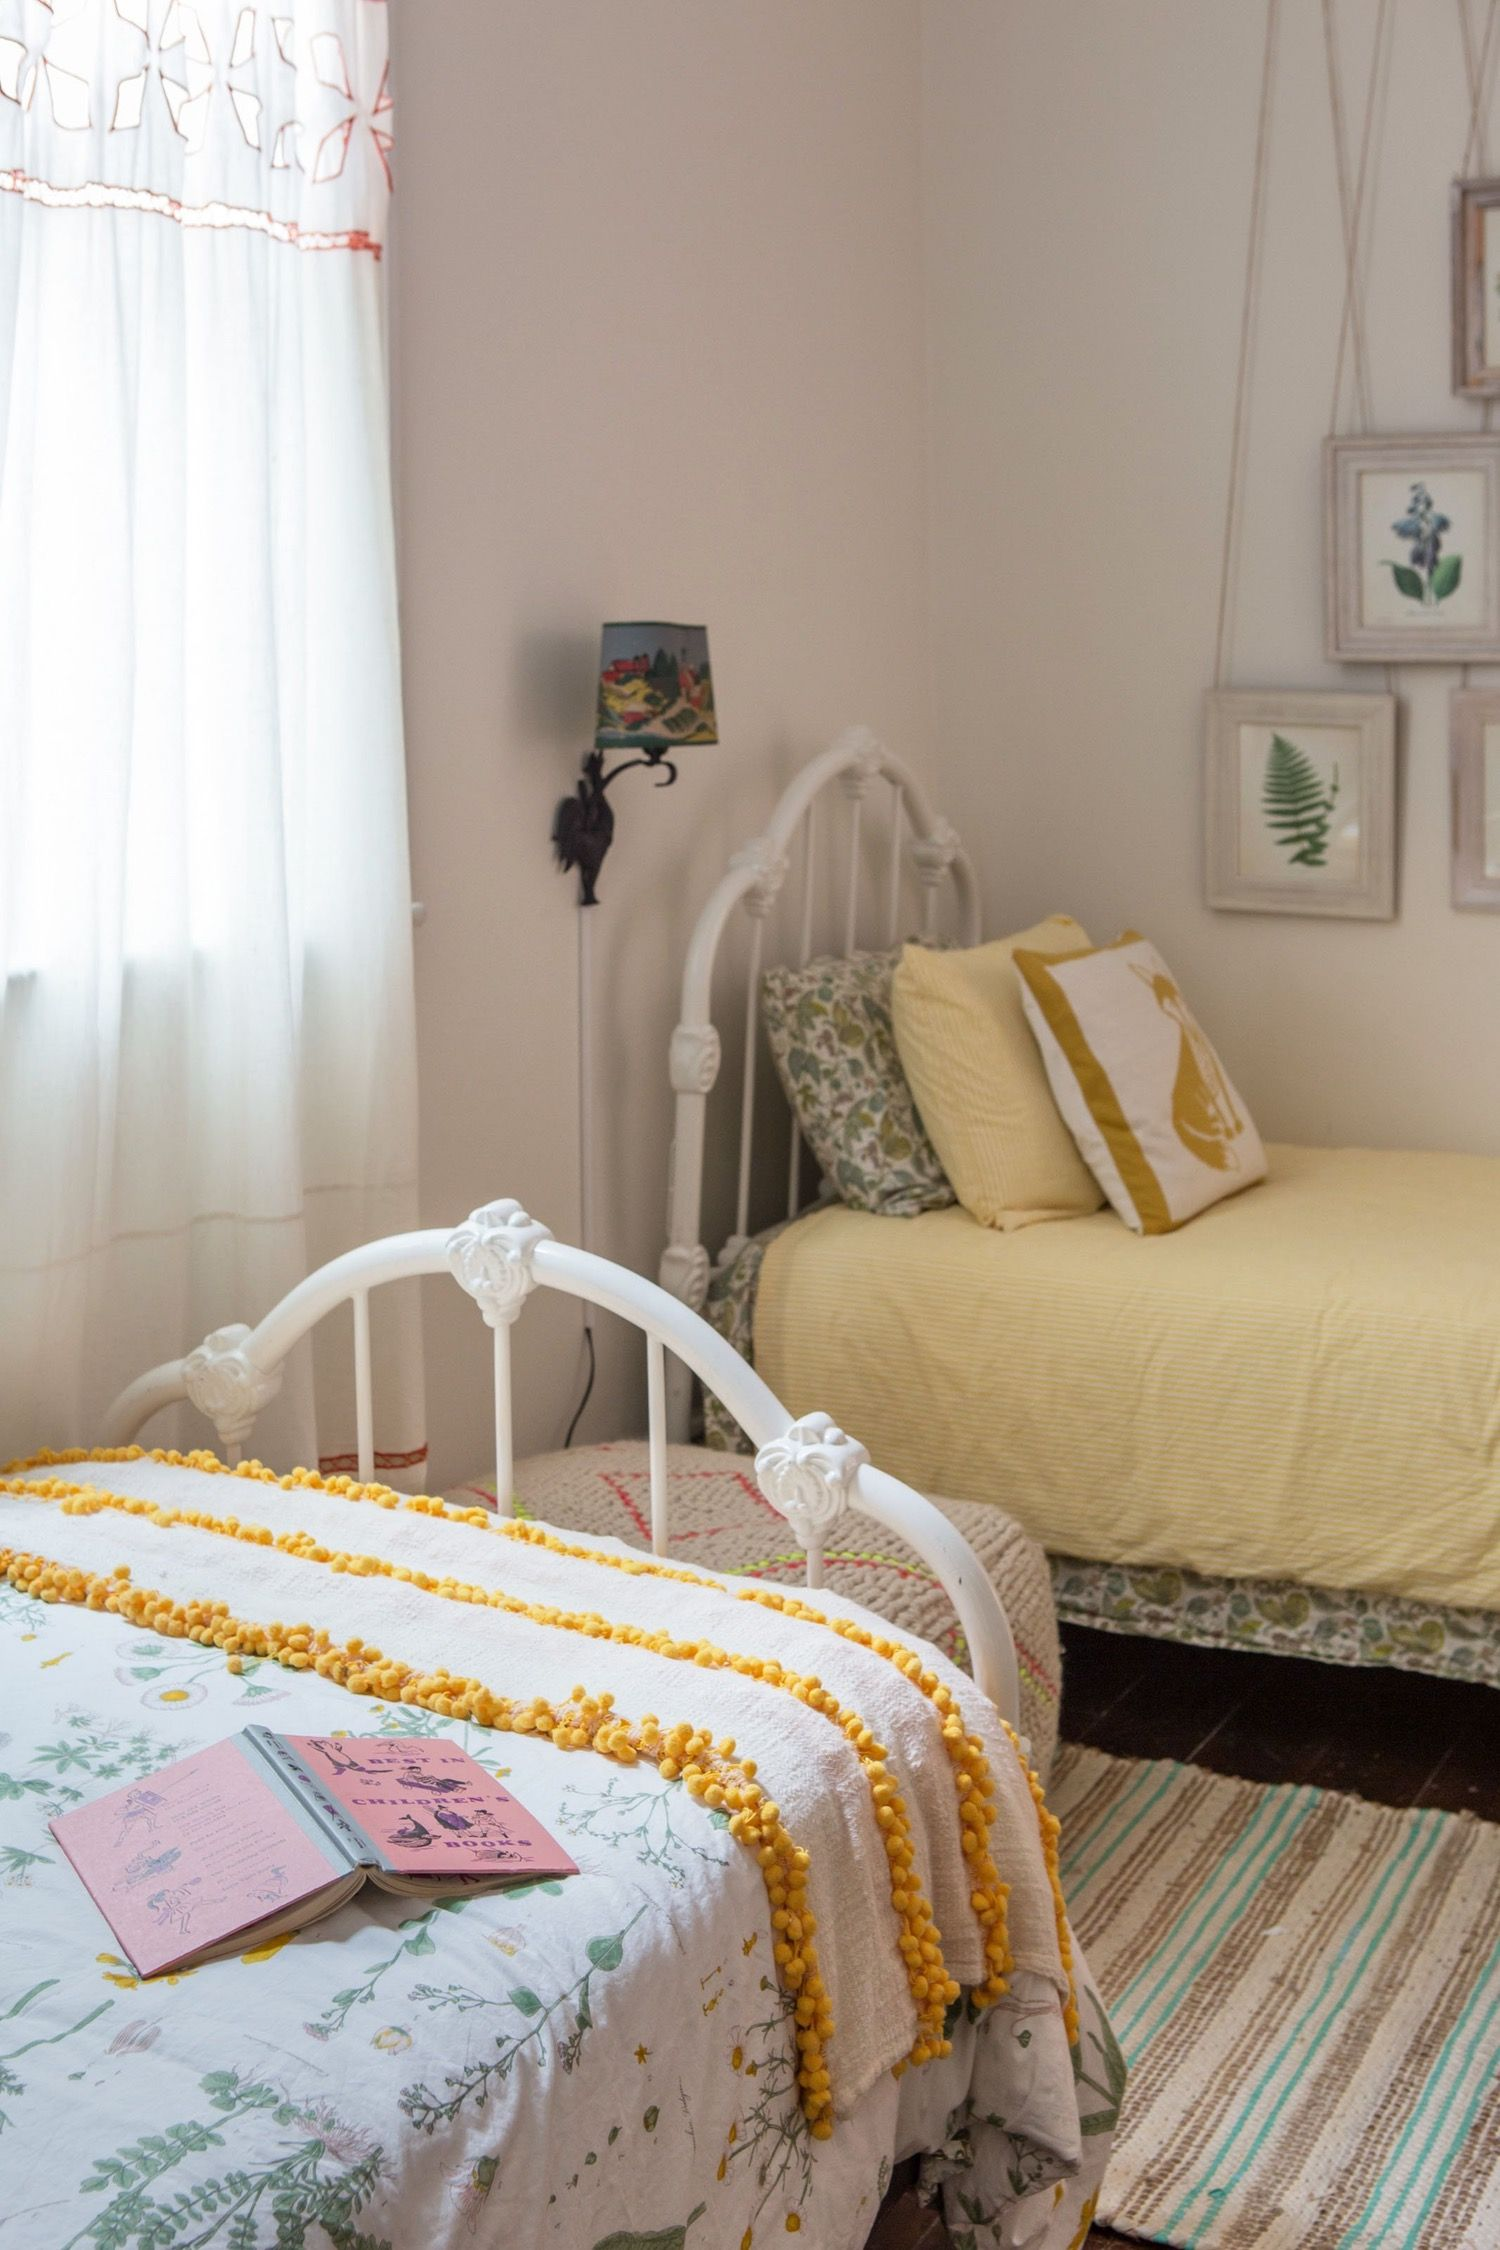 Design Ideas For Doubling Down Rooms With Two Twin Beds Small